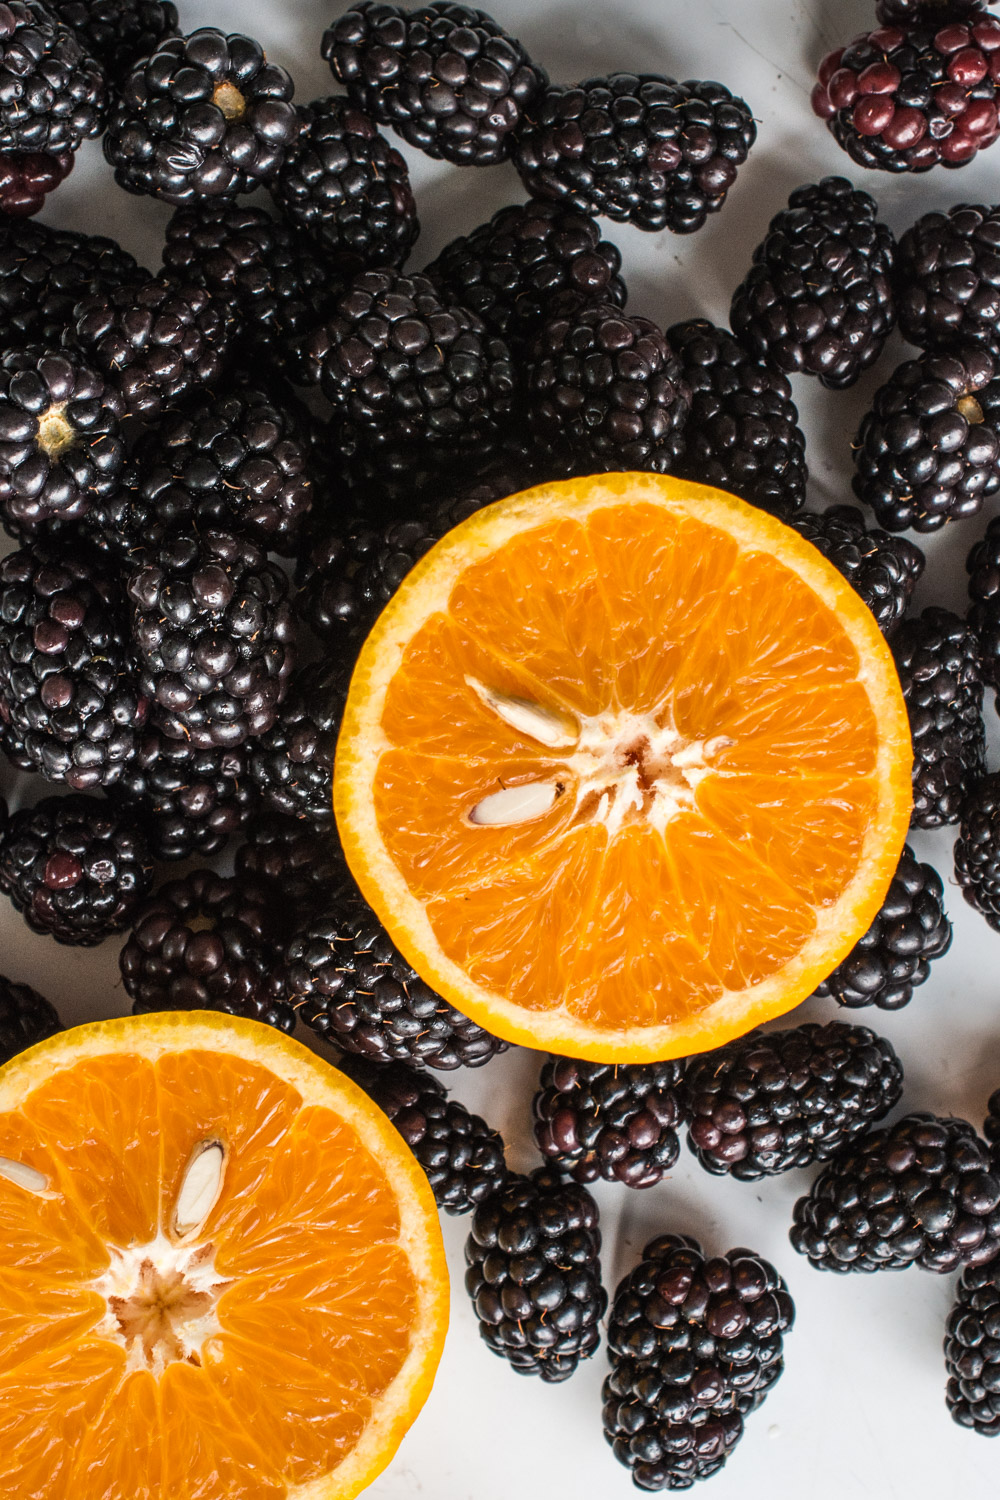 Fresh picked blackberries and an orange.